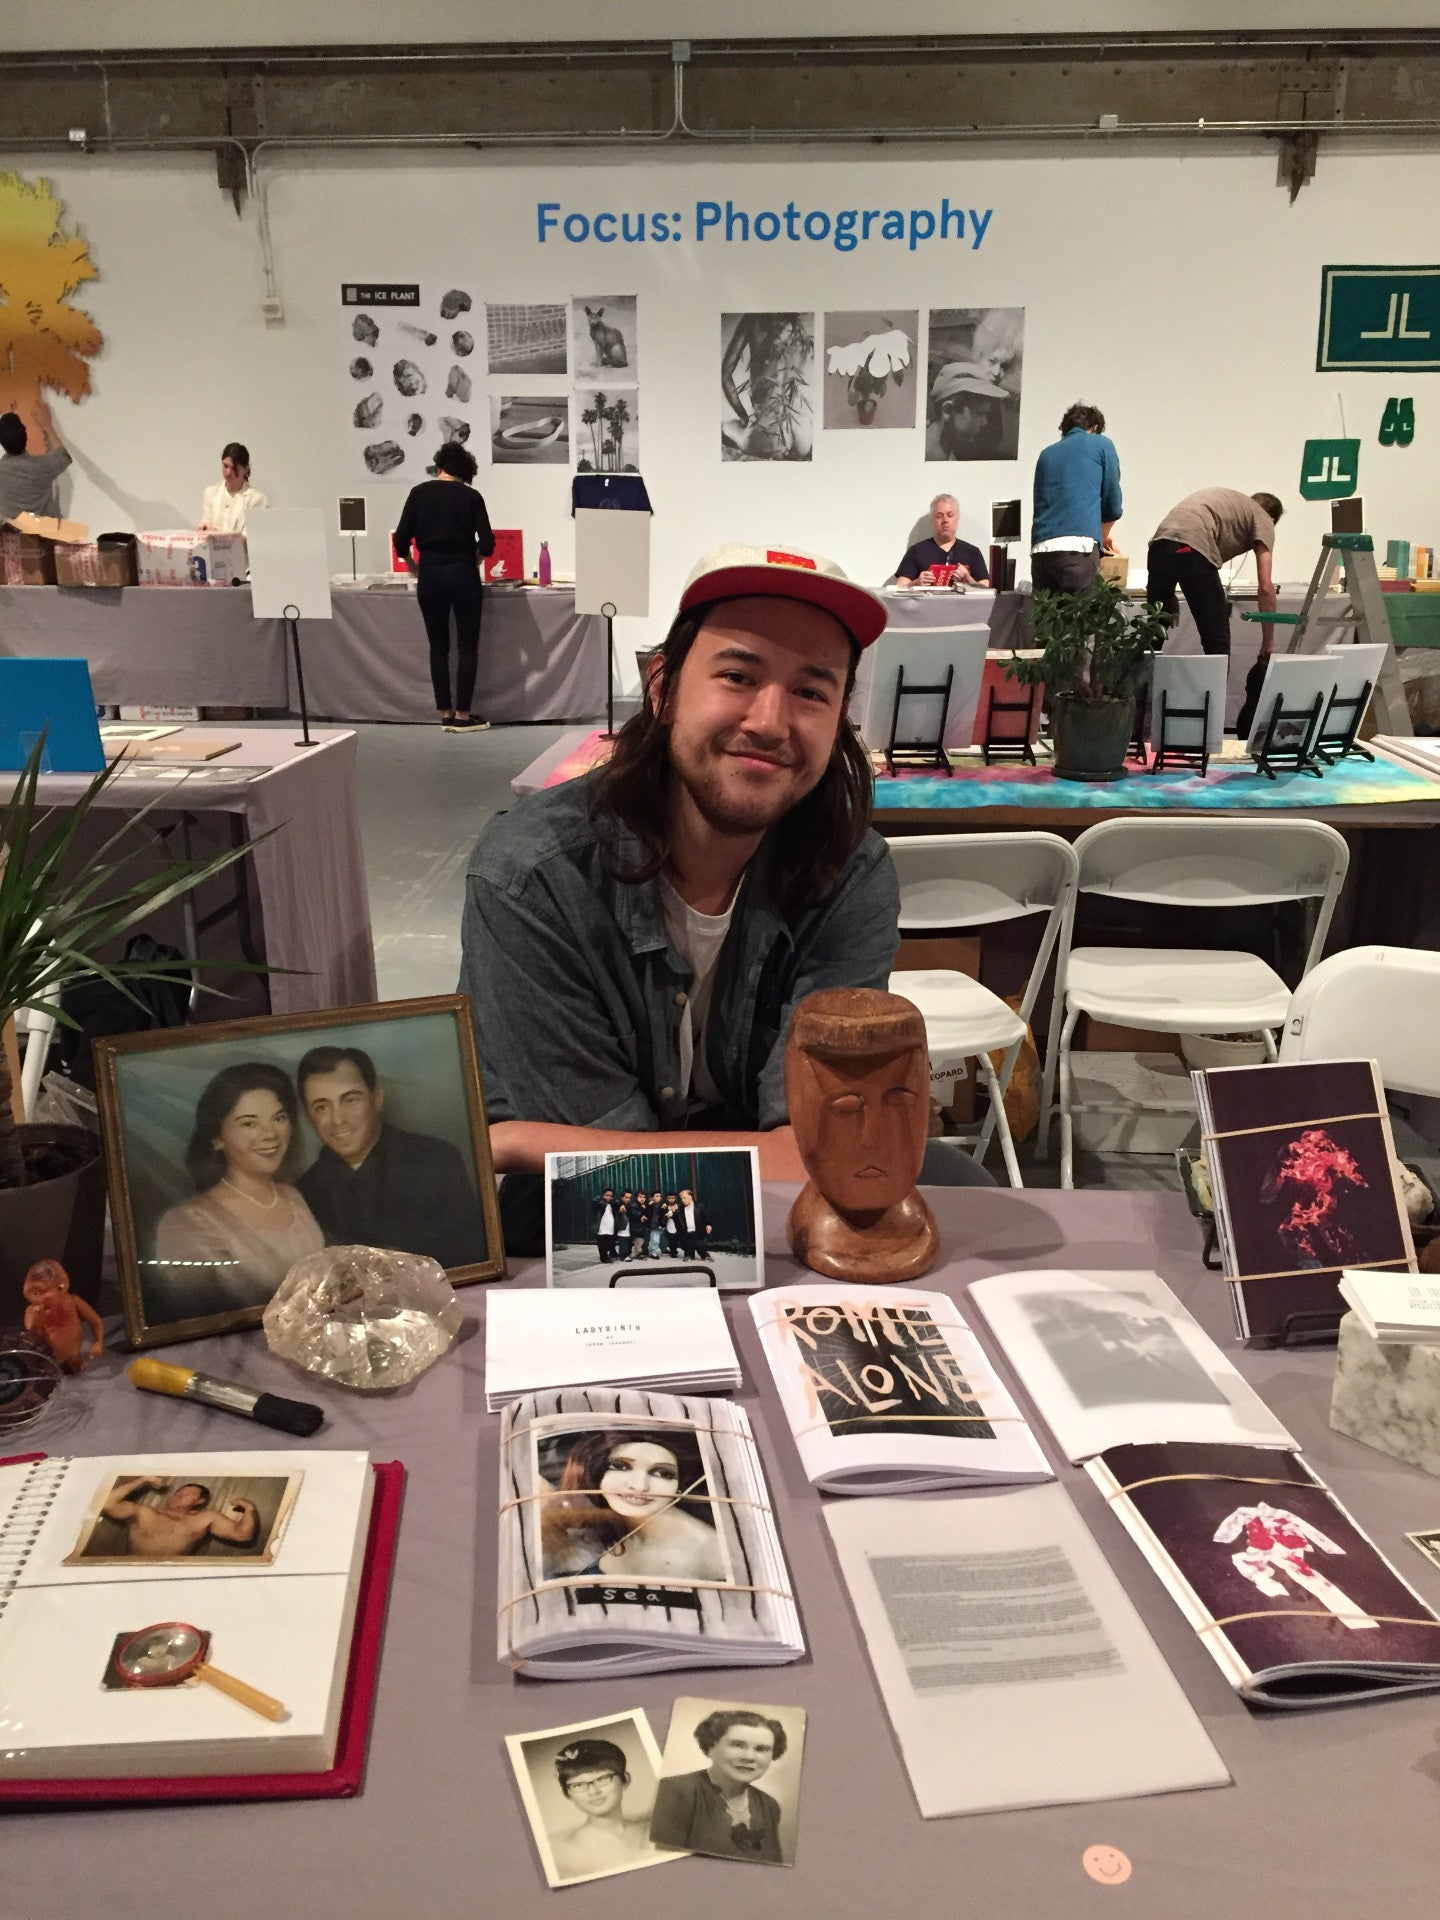 Jason Jaworski X SSK Press X LA ART BOOK FAIR 2015